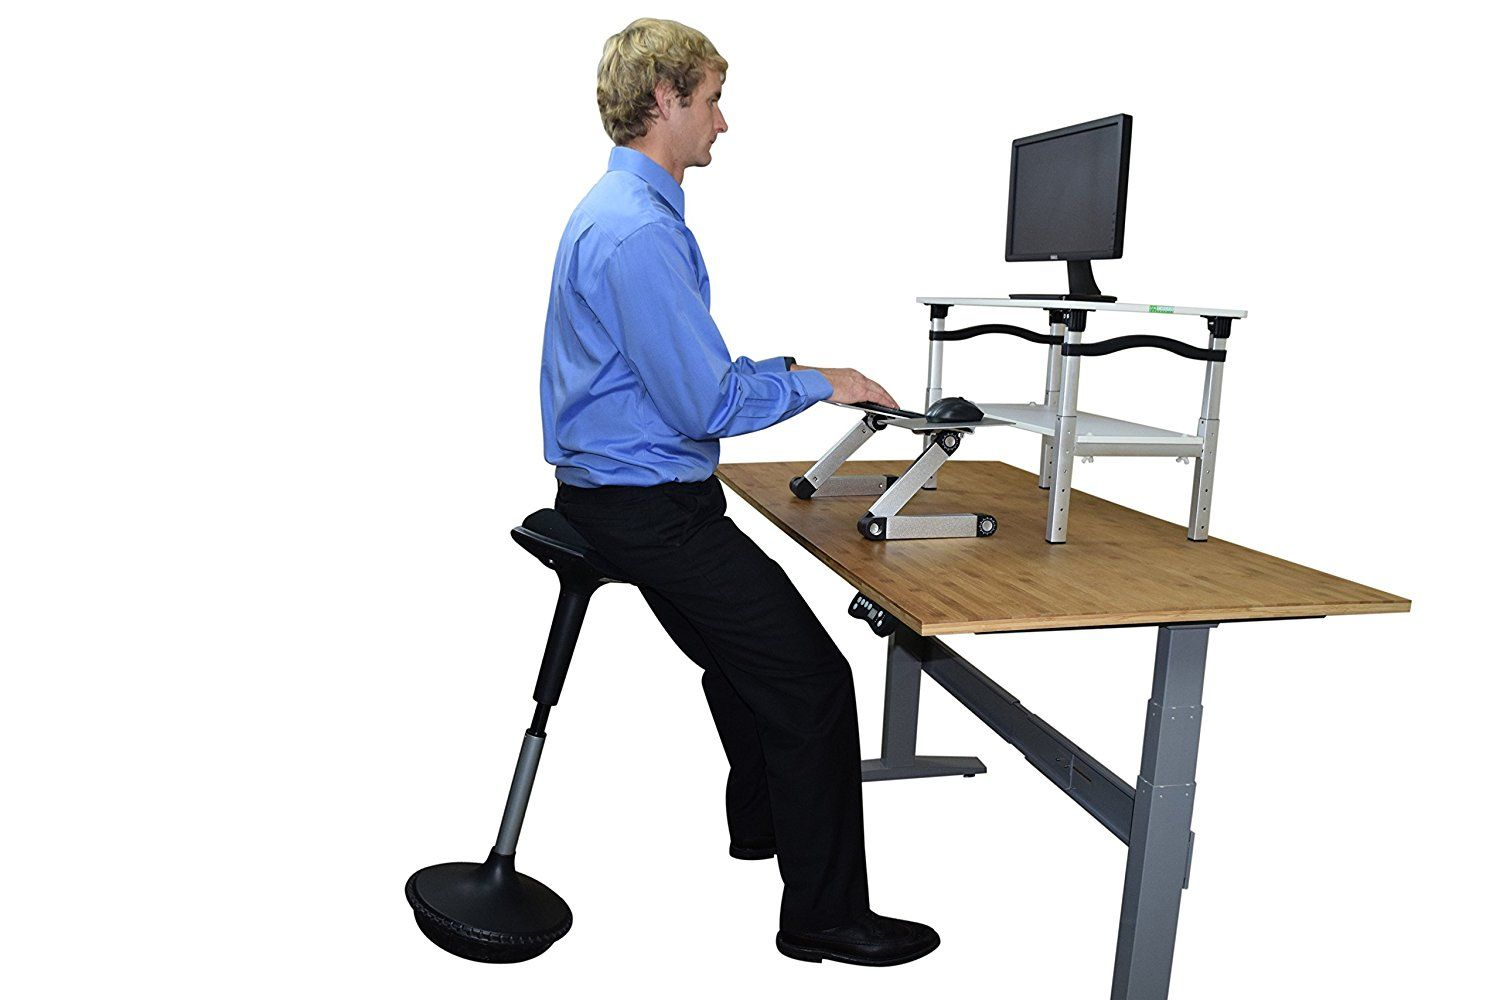 Ergonomic Stool for Standing Desk - Best Ergonomic Desk Chair Check more at //.gameintown.com/ergonomic-stool-for-standing-desk/  sc 1 st  Pinterest & Ergonomic Stool for Standing Desk - Best Ergonomic Desk Chair Check ...